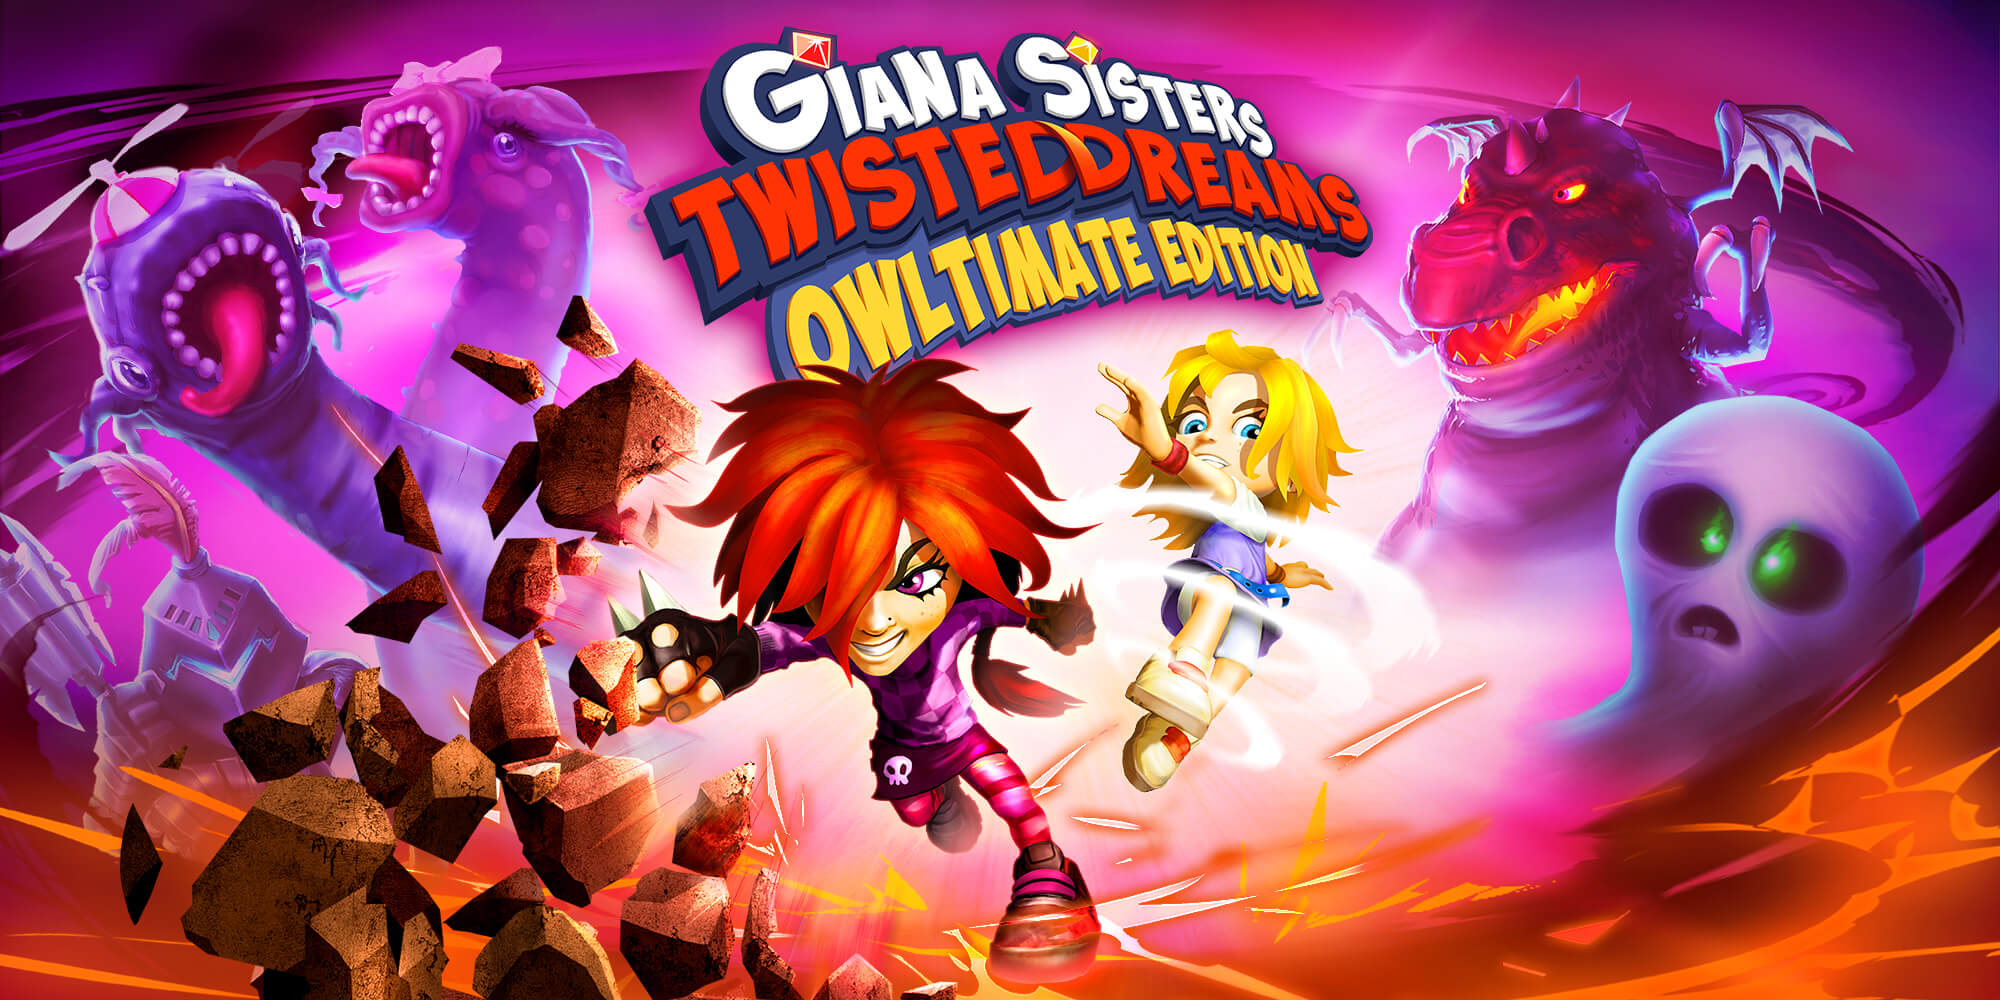 Giana Sisters Twisted Dreams – Owltimate Edition is coming to Nintendo™ Switch!